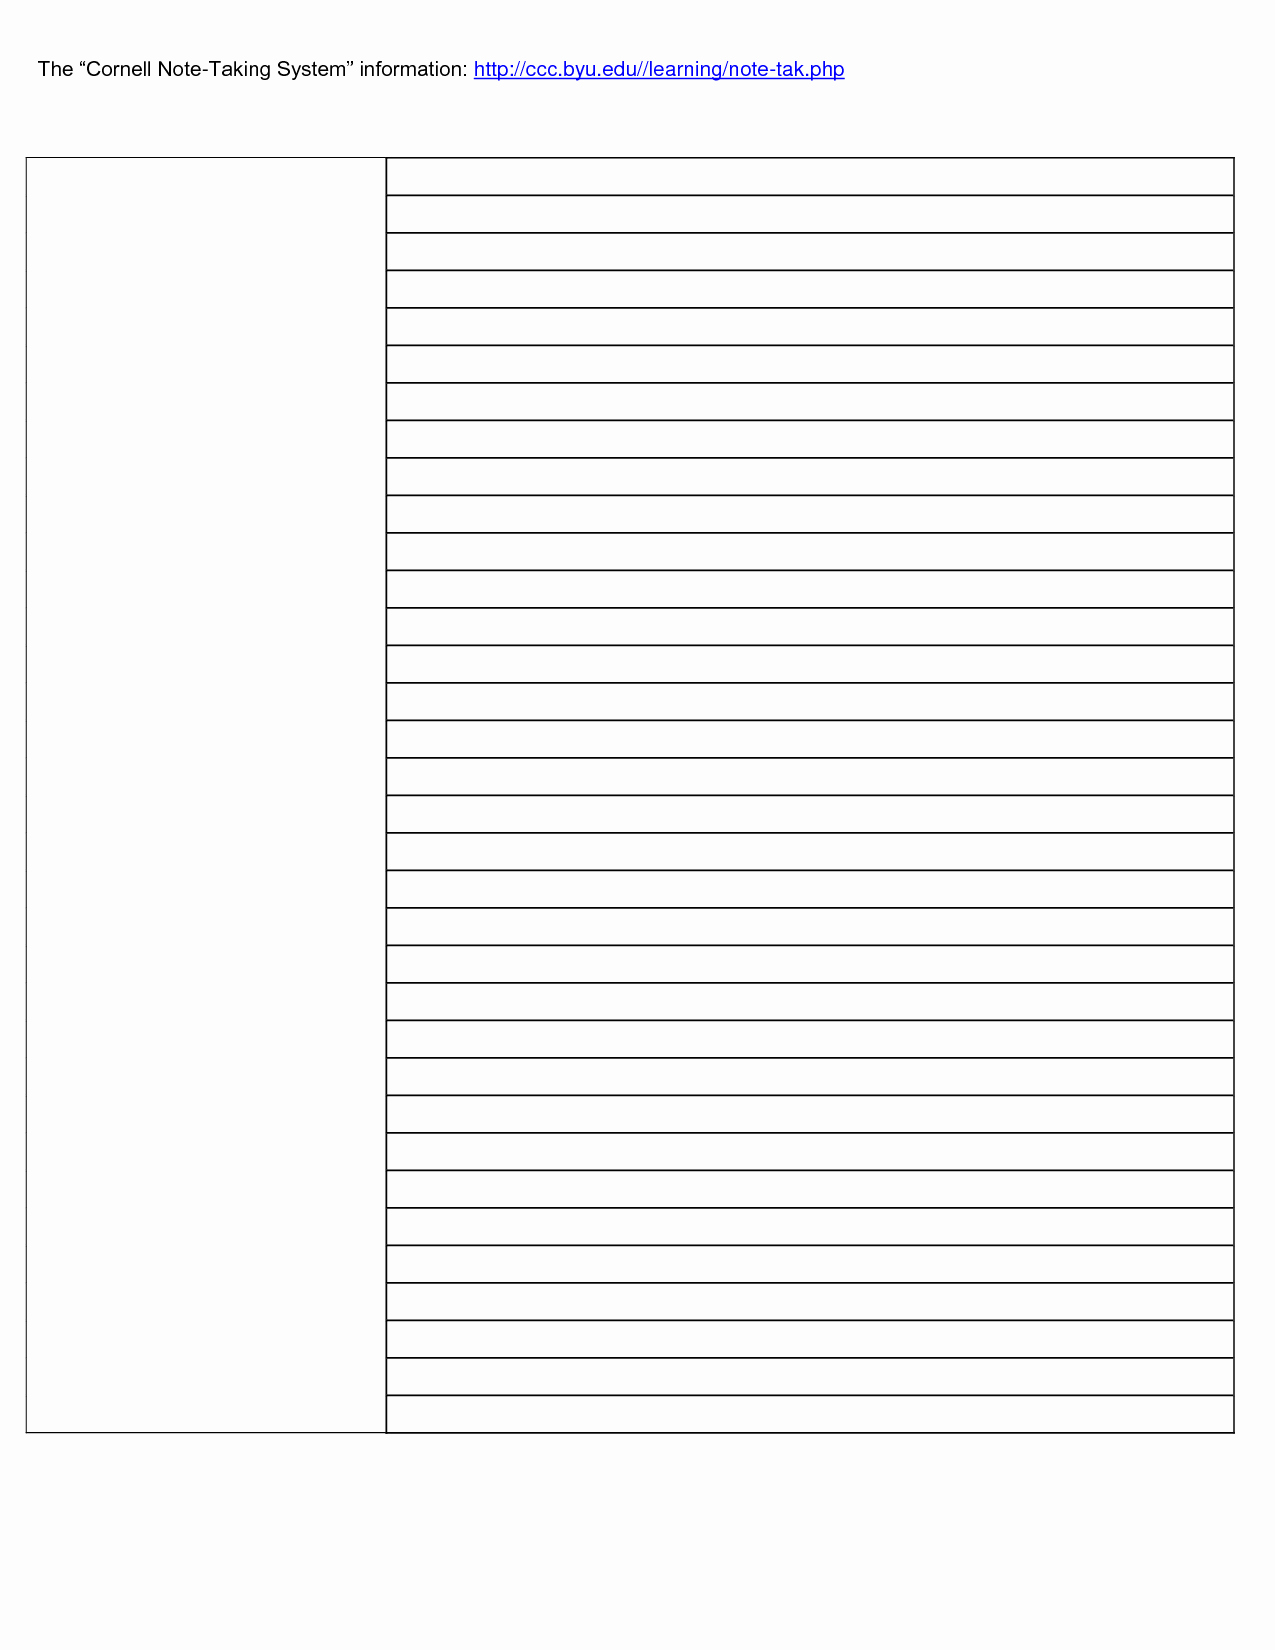 Cornell Note Template Word Lovely Cornell Notes Template Word Beepmunk